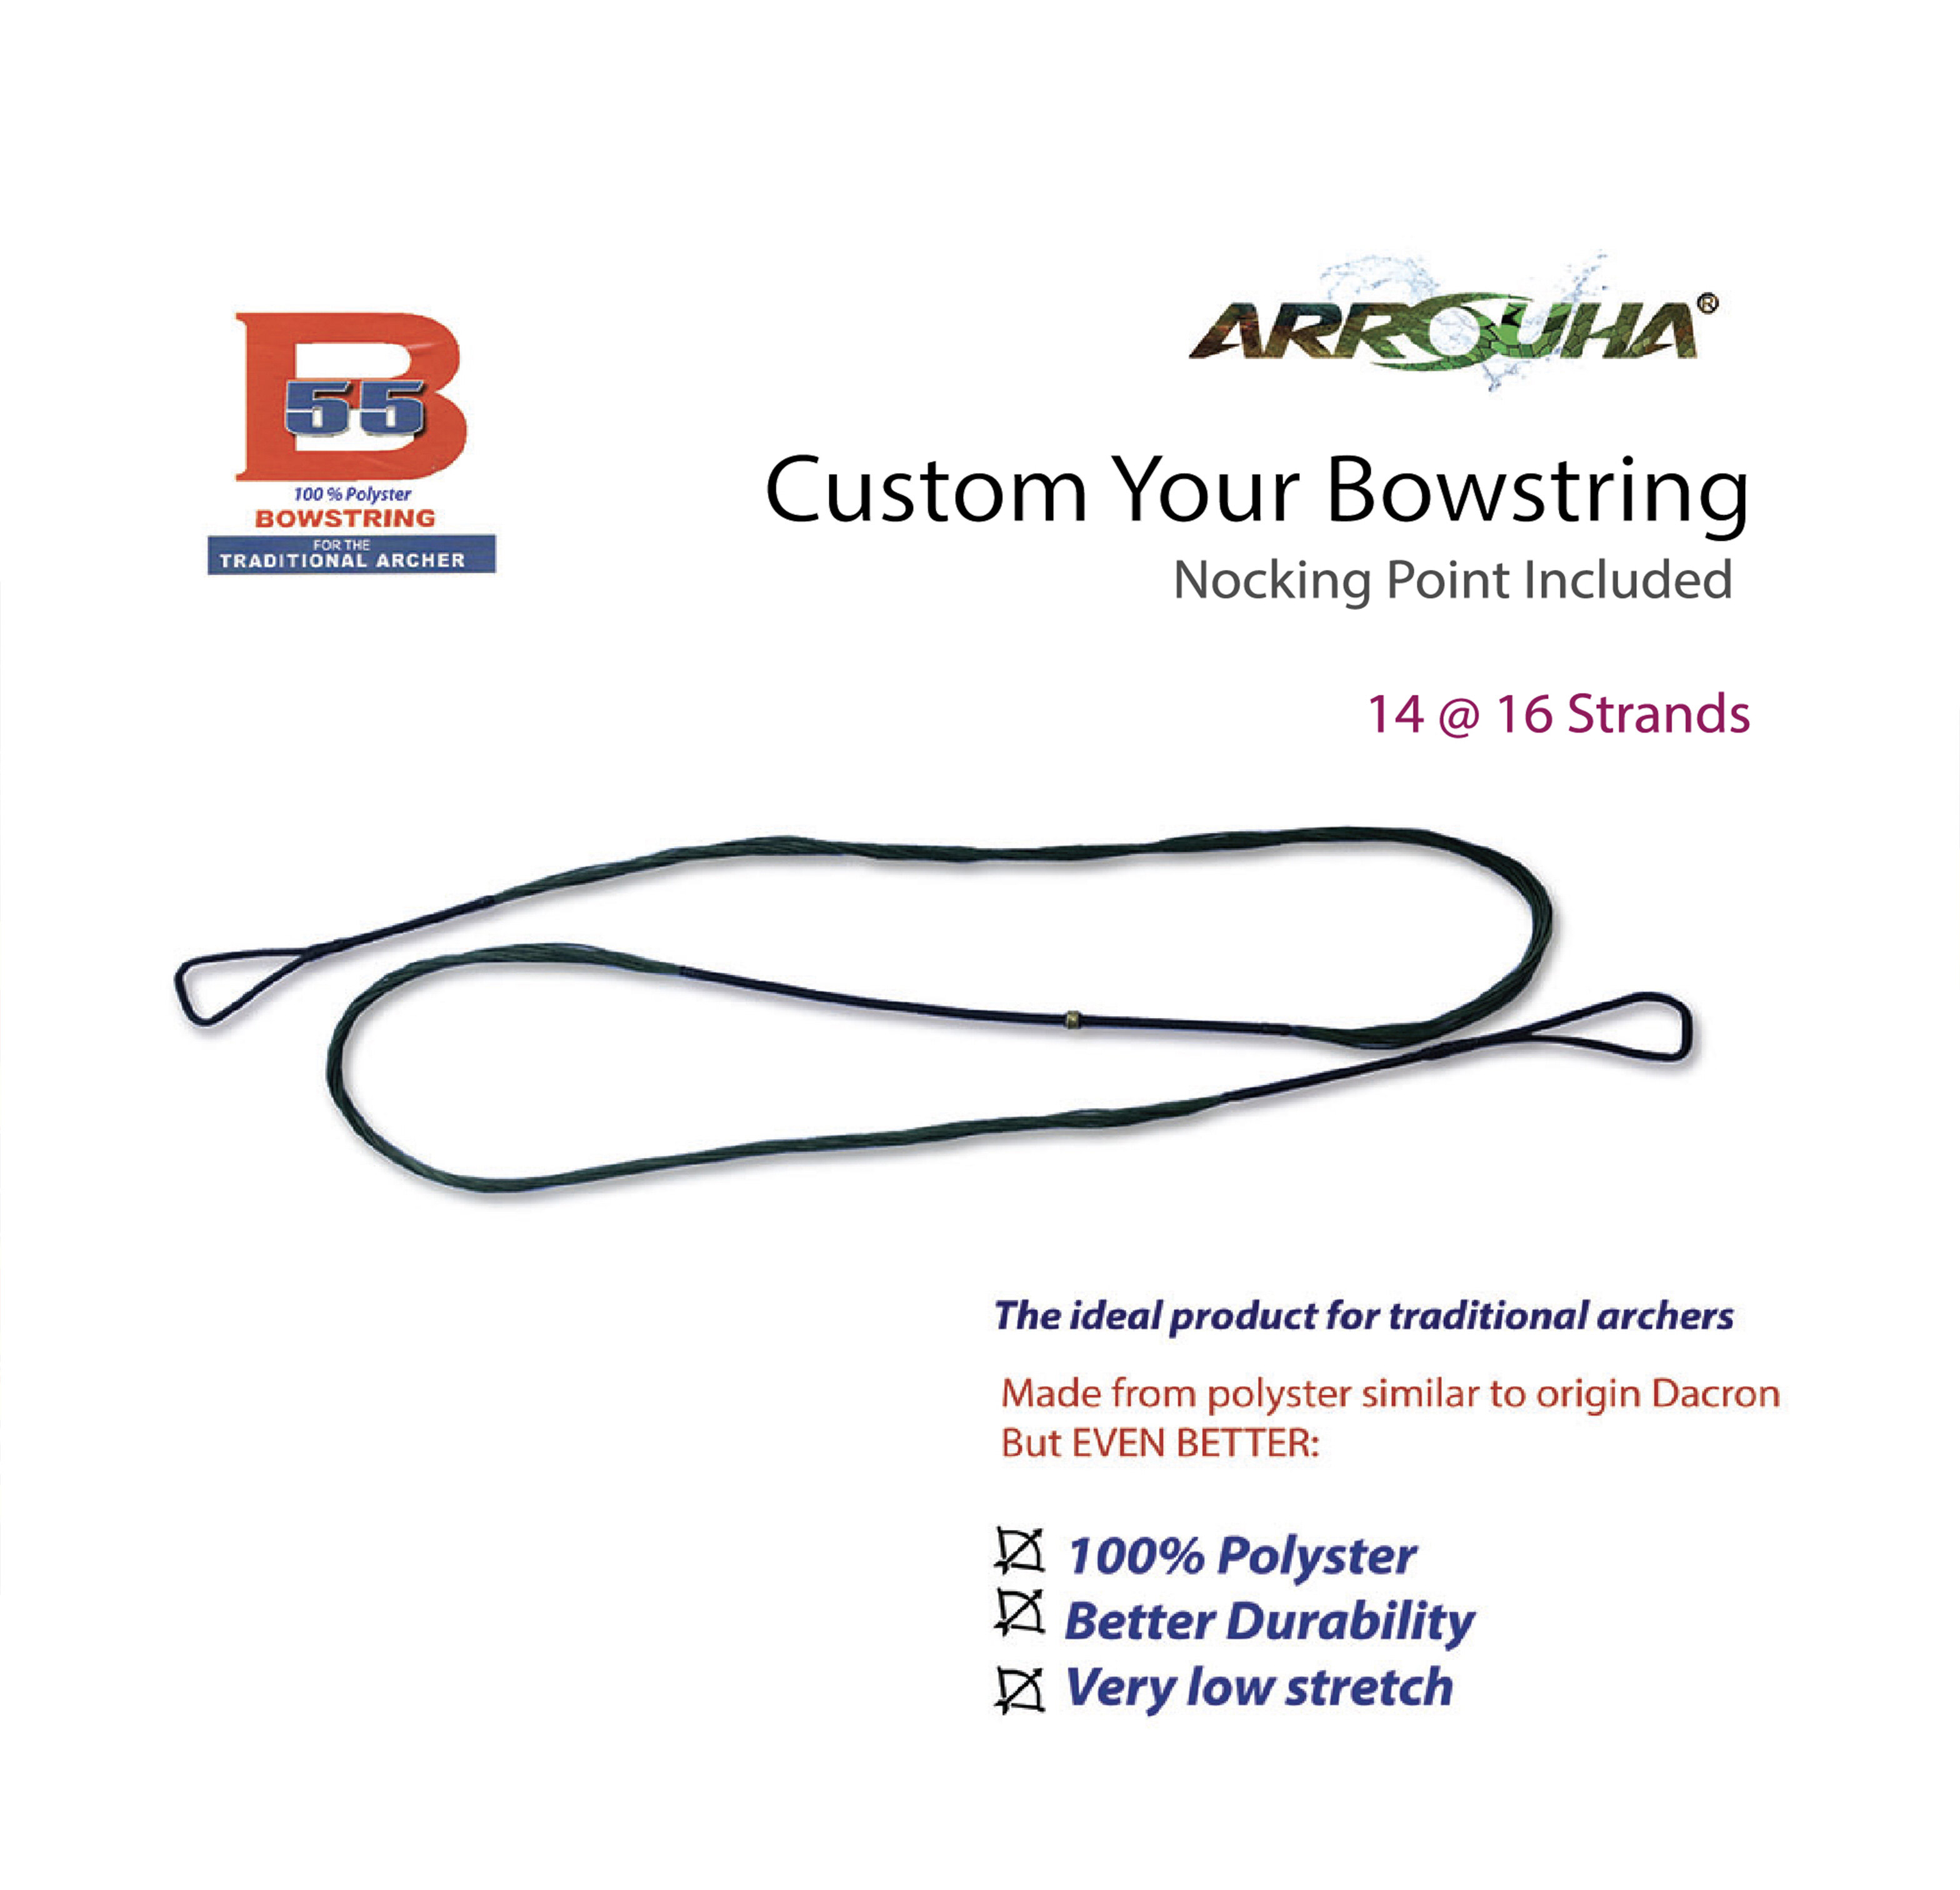 Traditional Bow String BCY B55 Custom Made Choose Your Size Now 14 Strands or 16 Strands Special by Arrouha